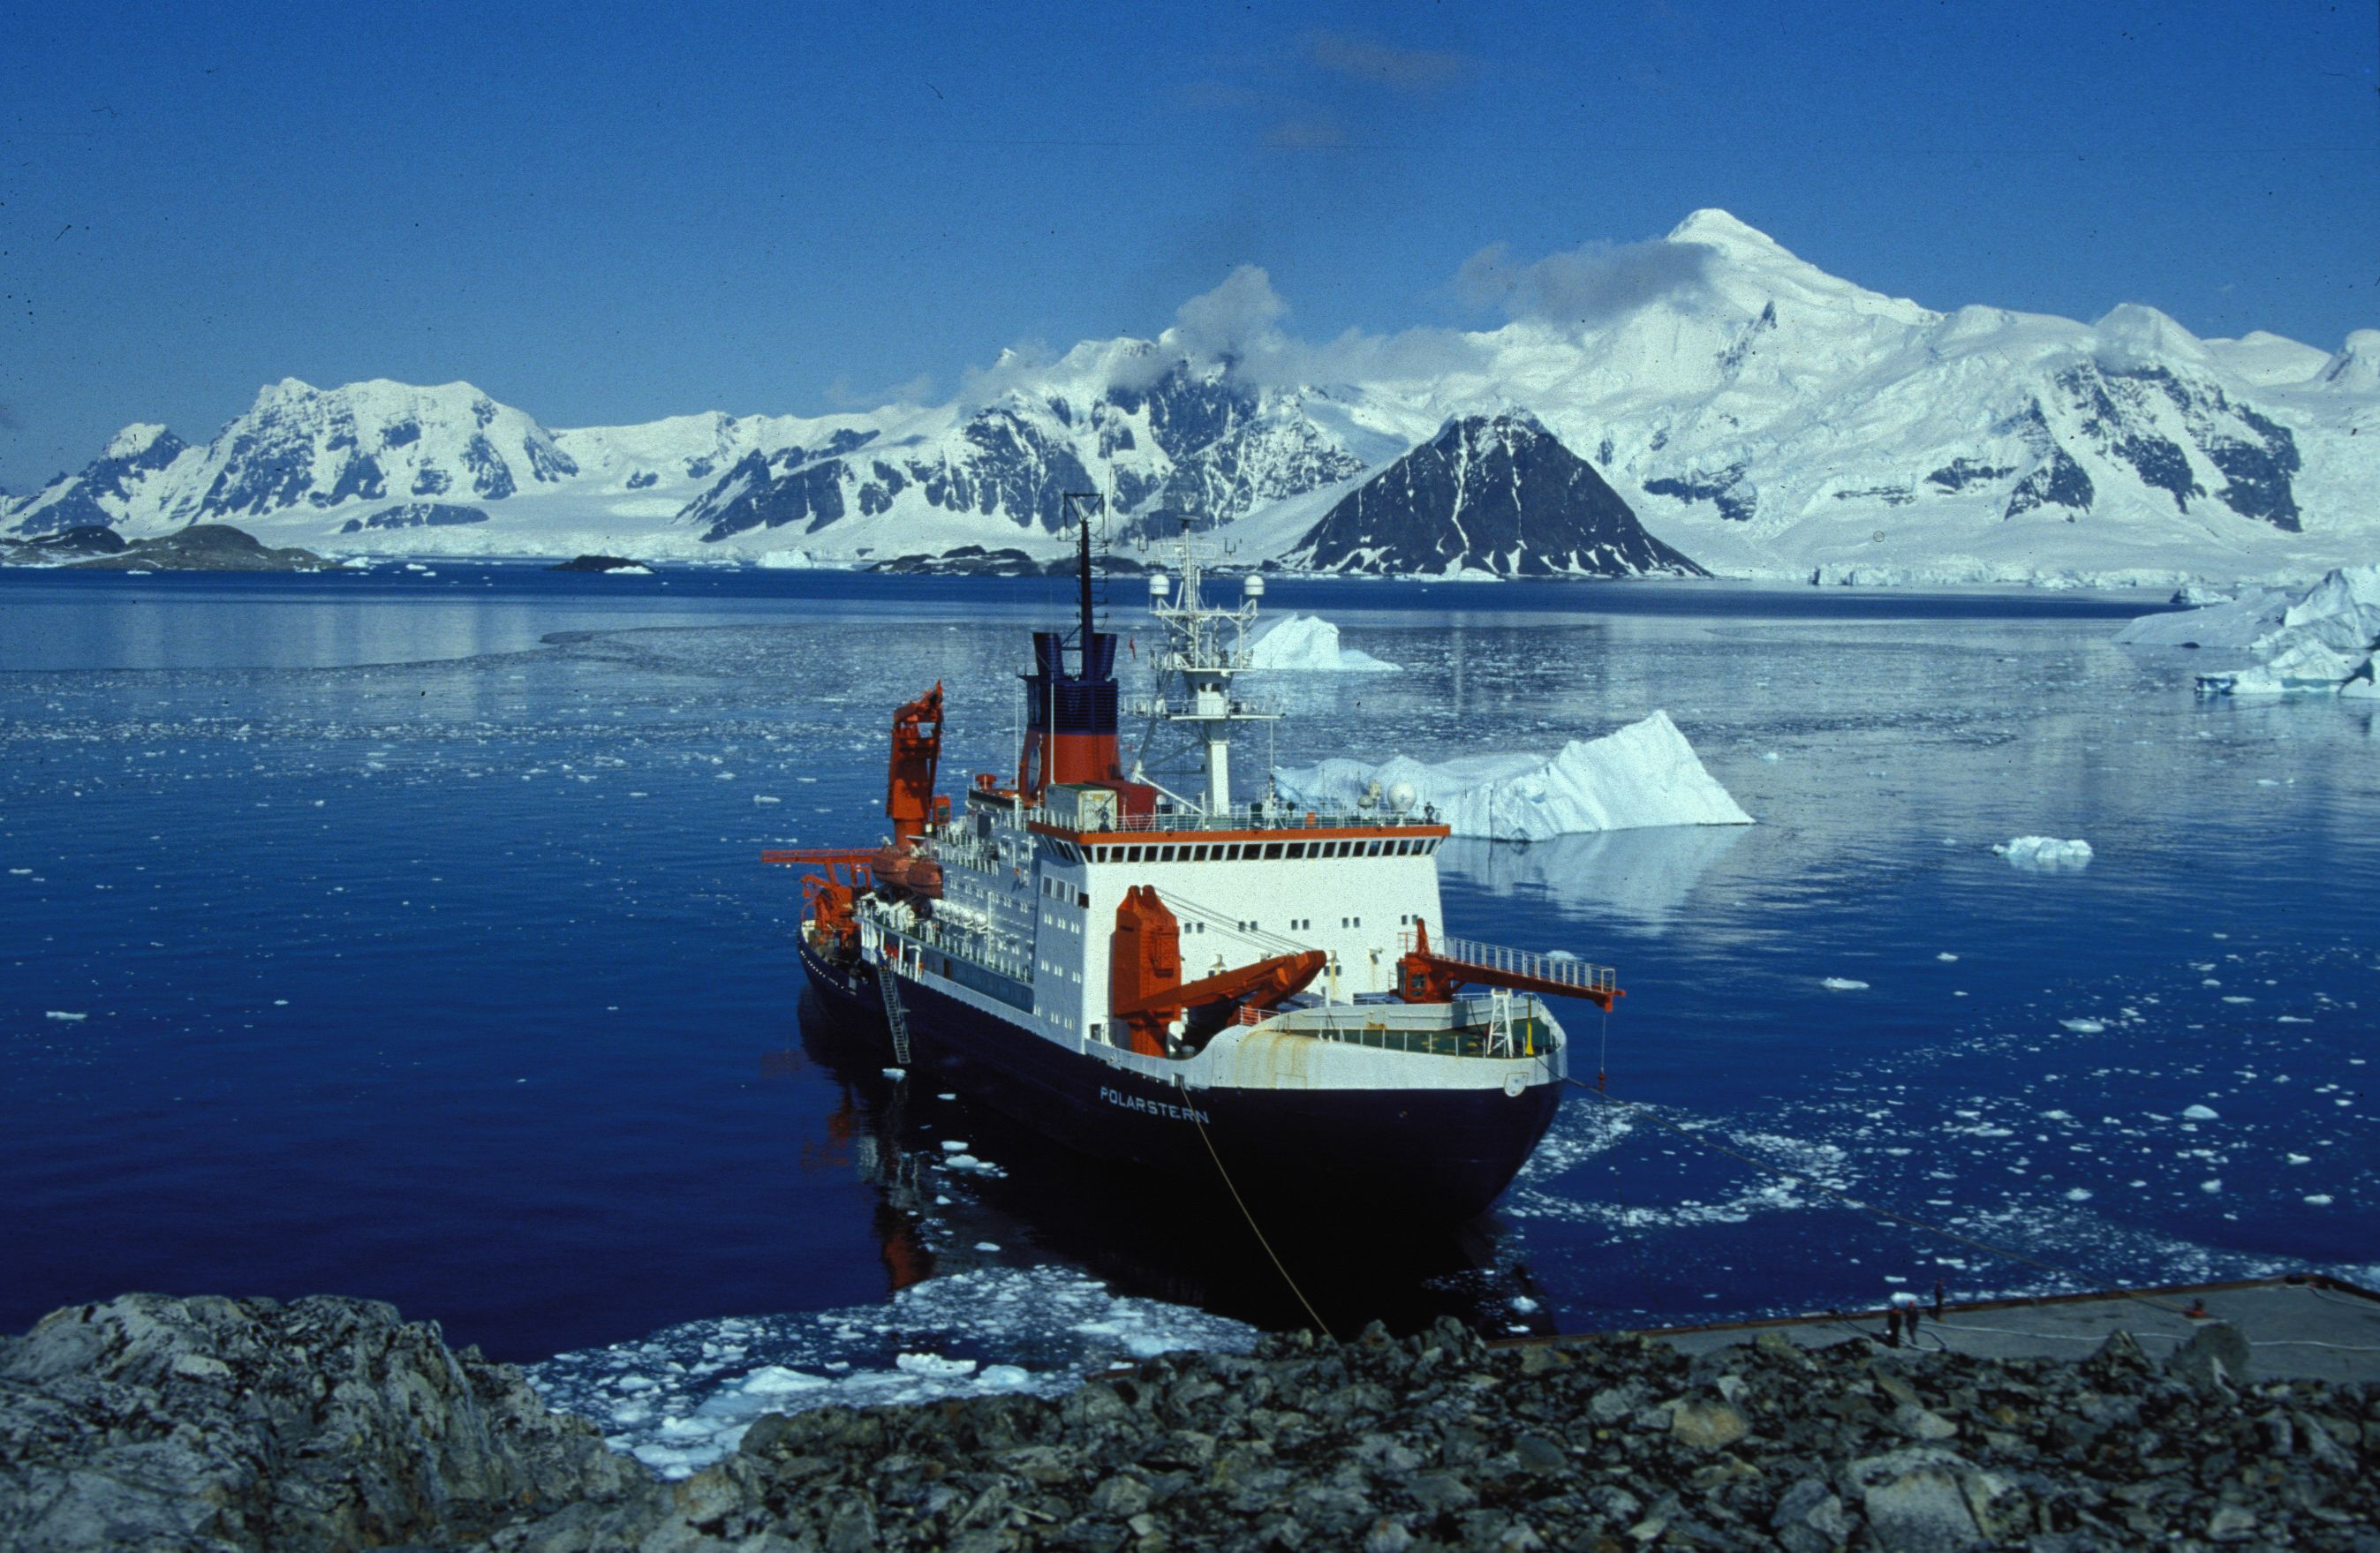 Fireproofing the Arctic